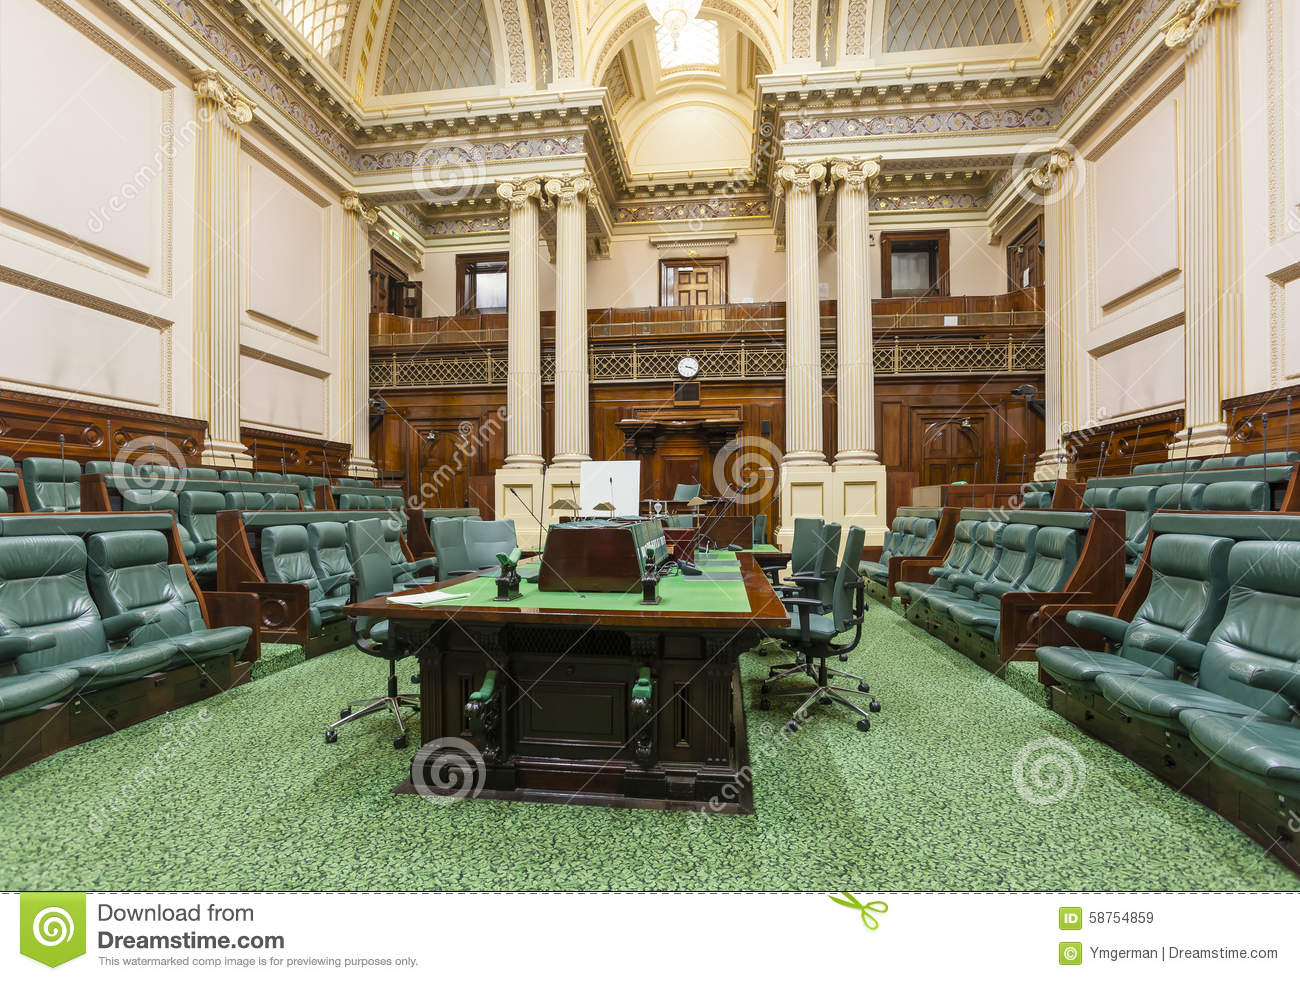 Houses Of Parliament Interior. Meeting room inside Parliament House Room Inside Editorial Stock Image